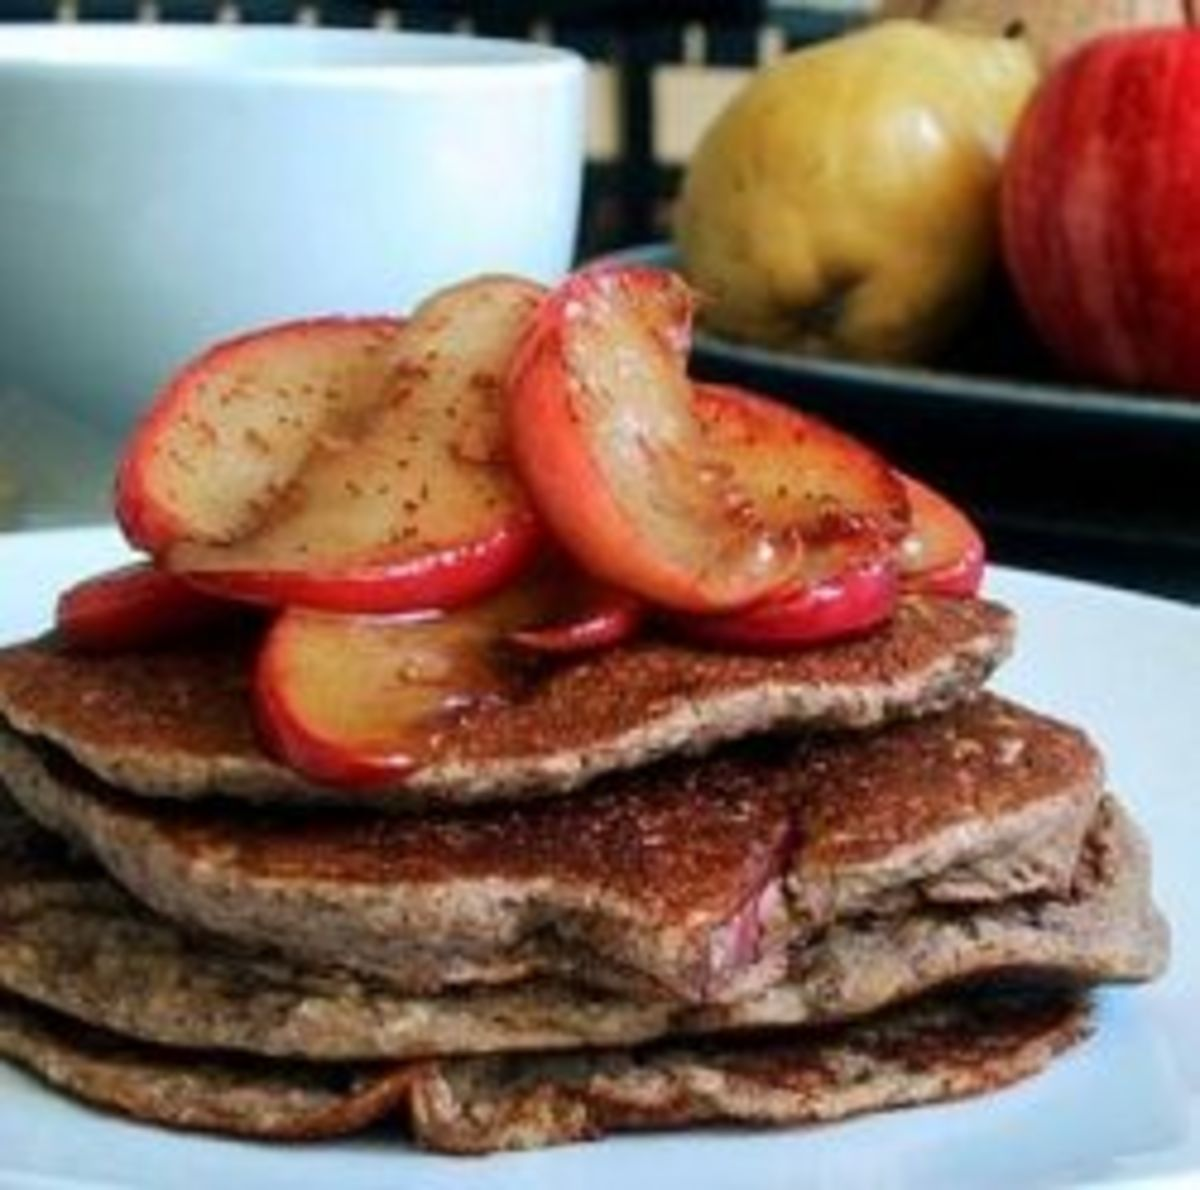 Vegan Breakfast Ideas: 7 Sensational Ways To JumpStart Your Day [Recipes Included]